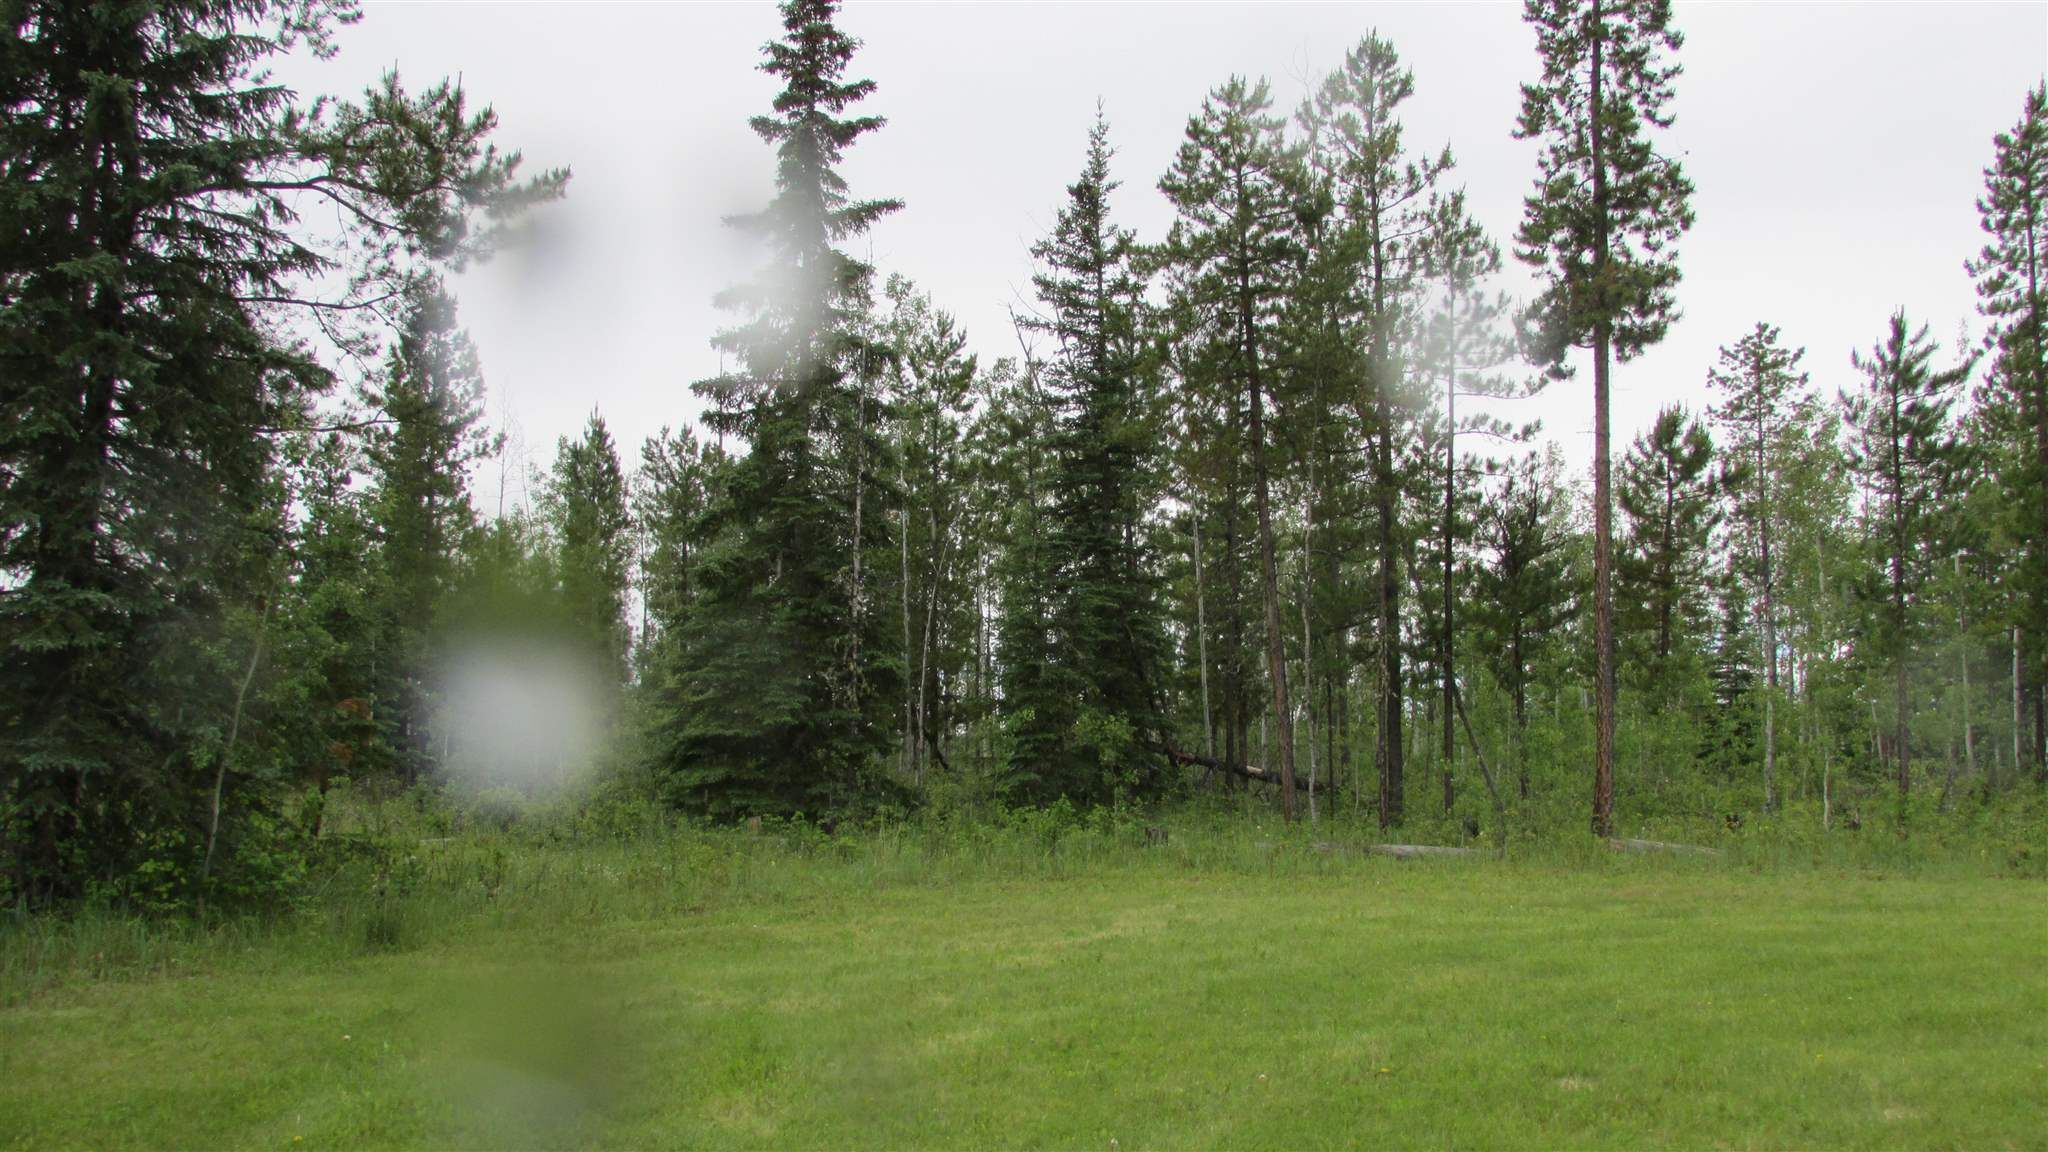 """Photo 7: Photos: 4663 RESCHKE Road: Hudsons Hope House for sale in """"LYNX CREEK SUBDIVISION"""" (Fort St. John (Zone 60))  : MLS®# R2594975"""